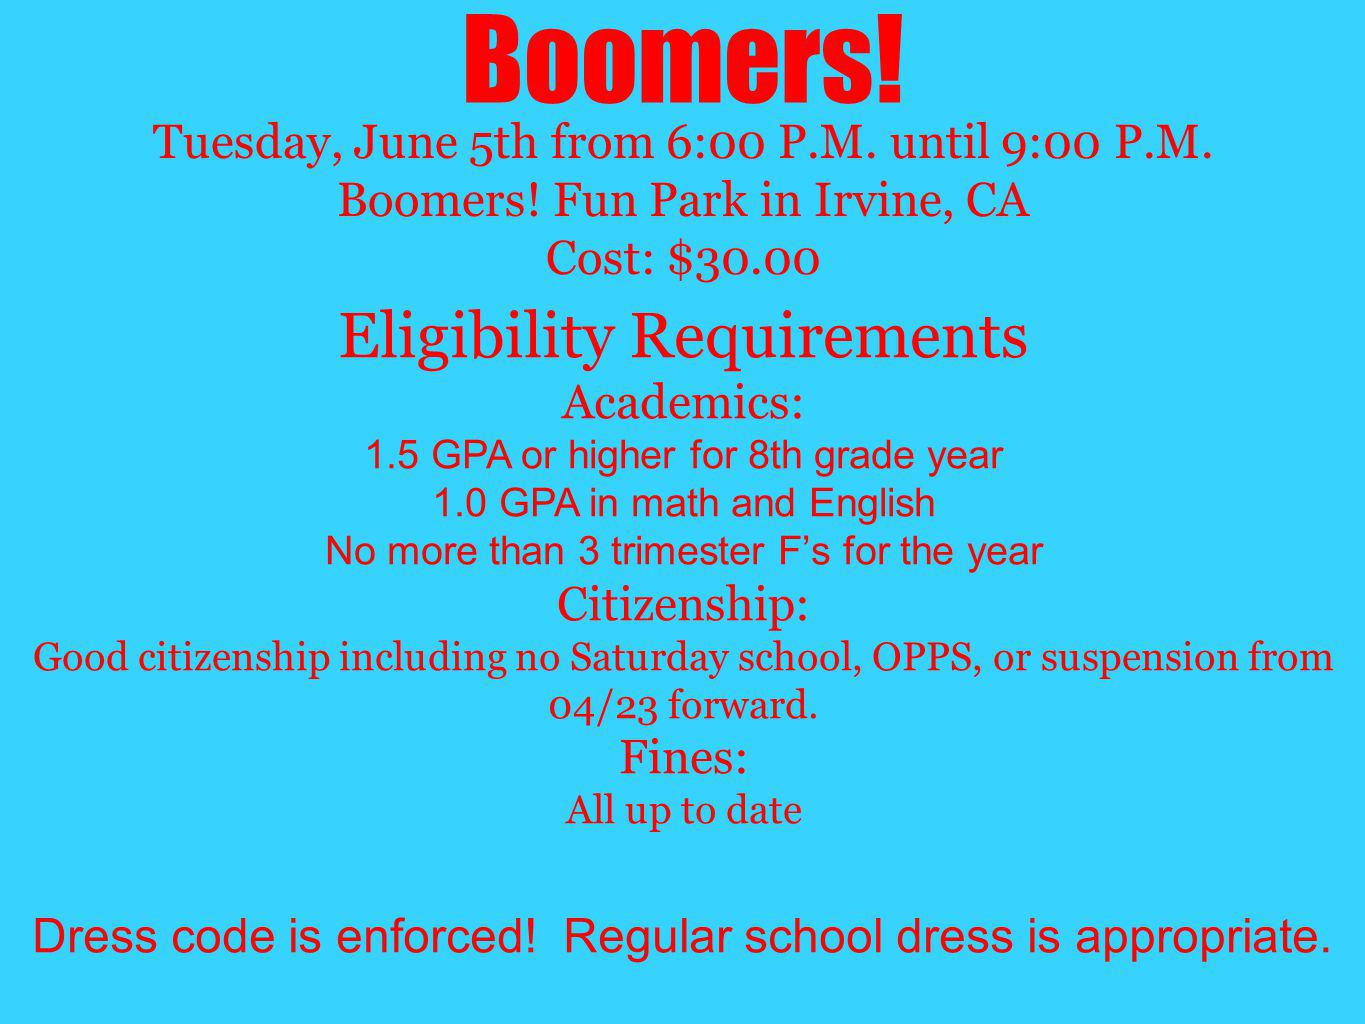 Boomers! Tuesday, June 5th from 6:00 P.M. until 9:00 P.M. Boomers! Fun Park in Irvine, CA Cost: $30.00 Eligibility Requirements Academics: 1.5 GPA or